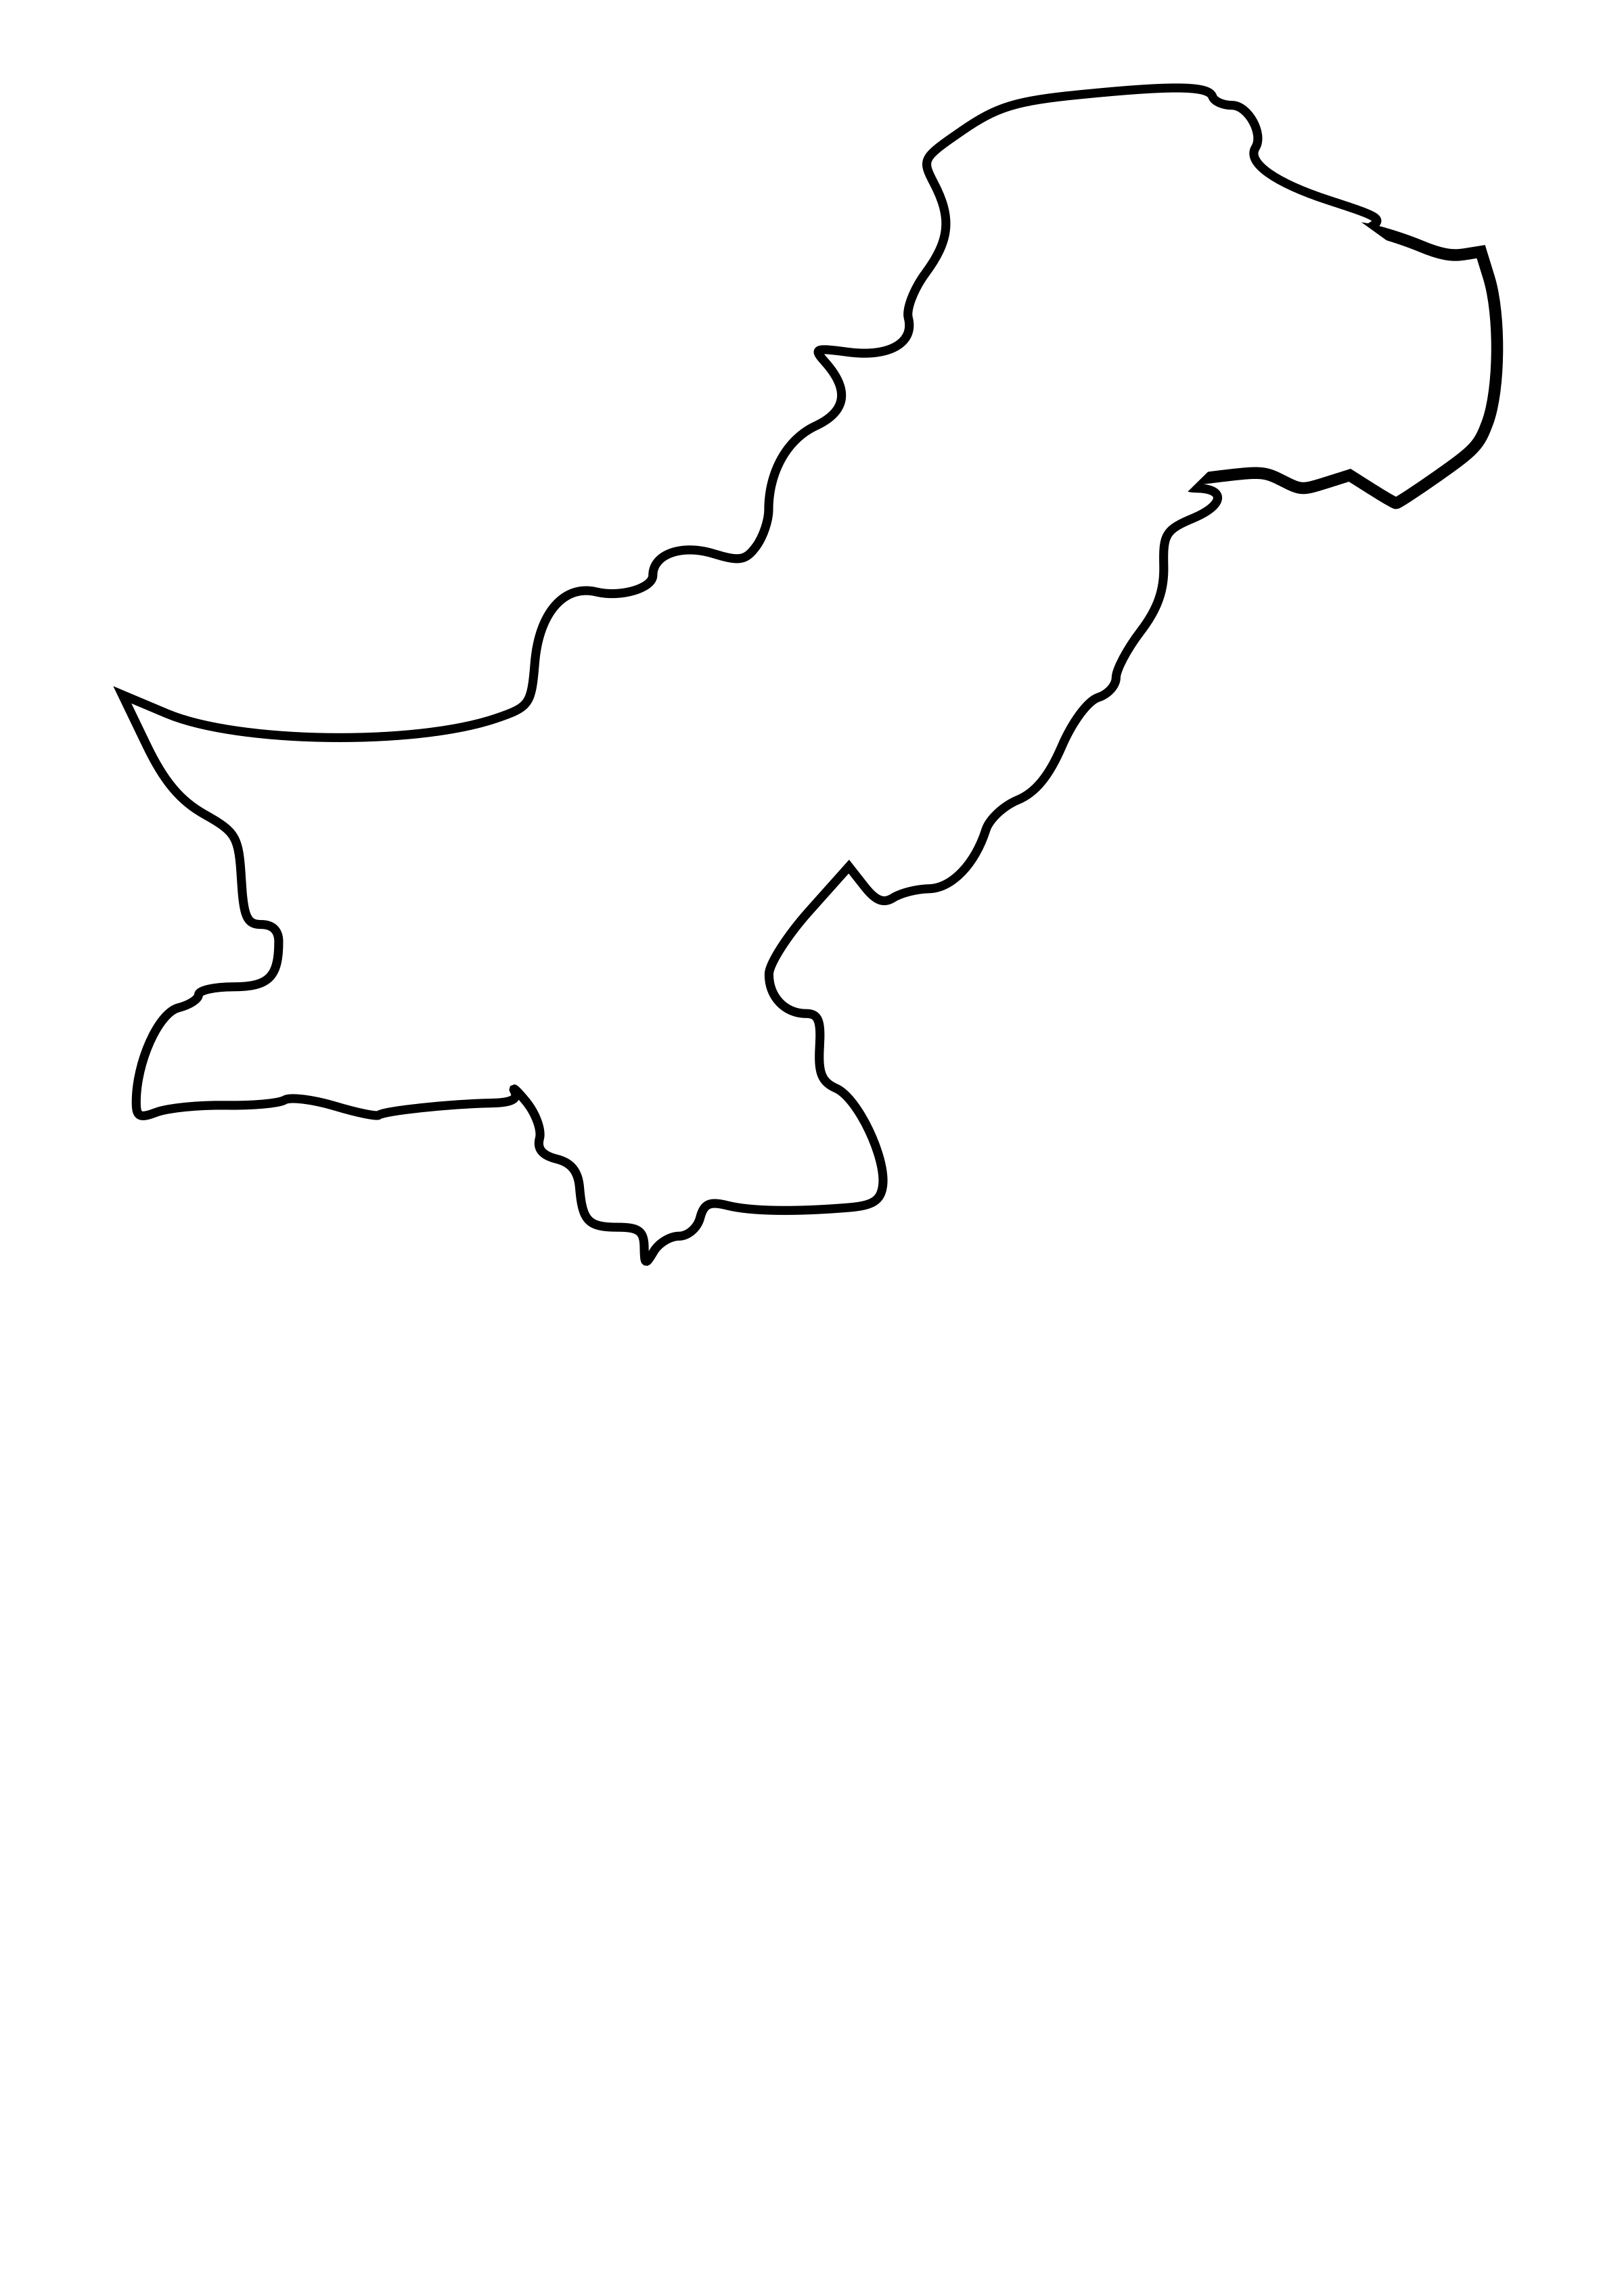 Black outline map of Pakistan by taughtware